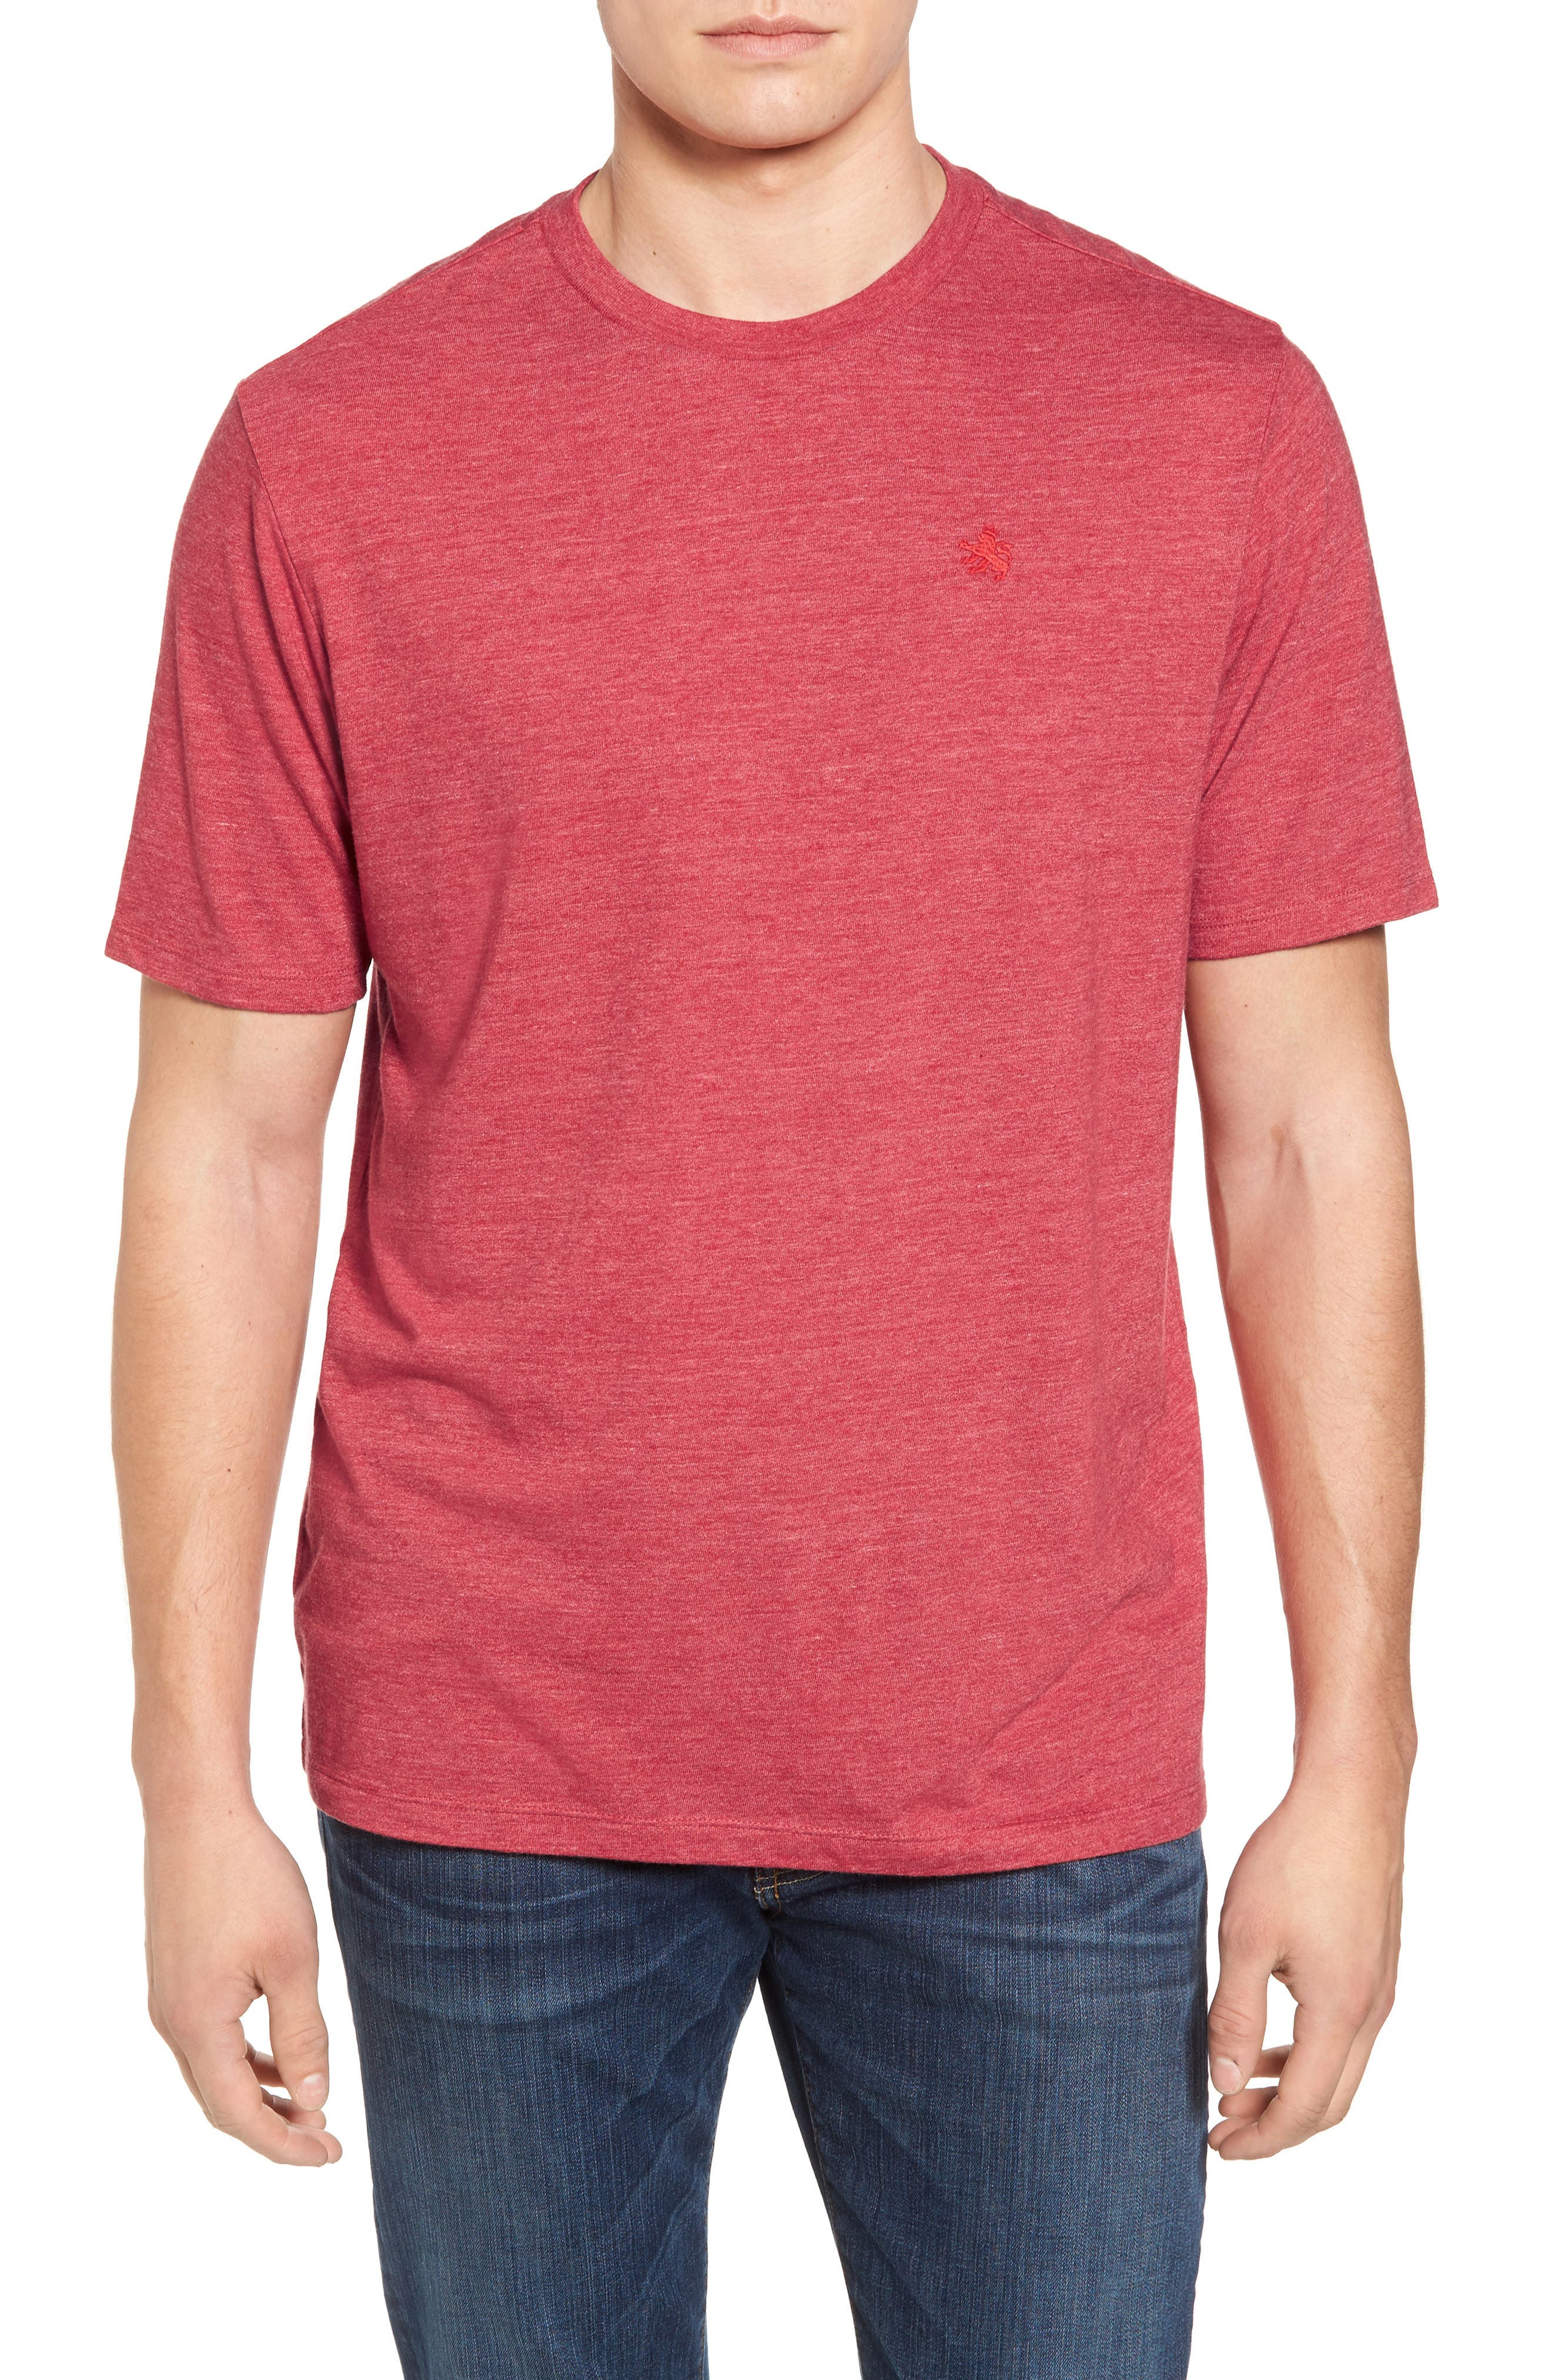 For the Good Life Graphic T-Shirt,                             Main thumbnail 1, color,                             Red Heat